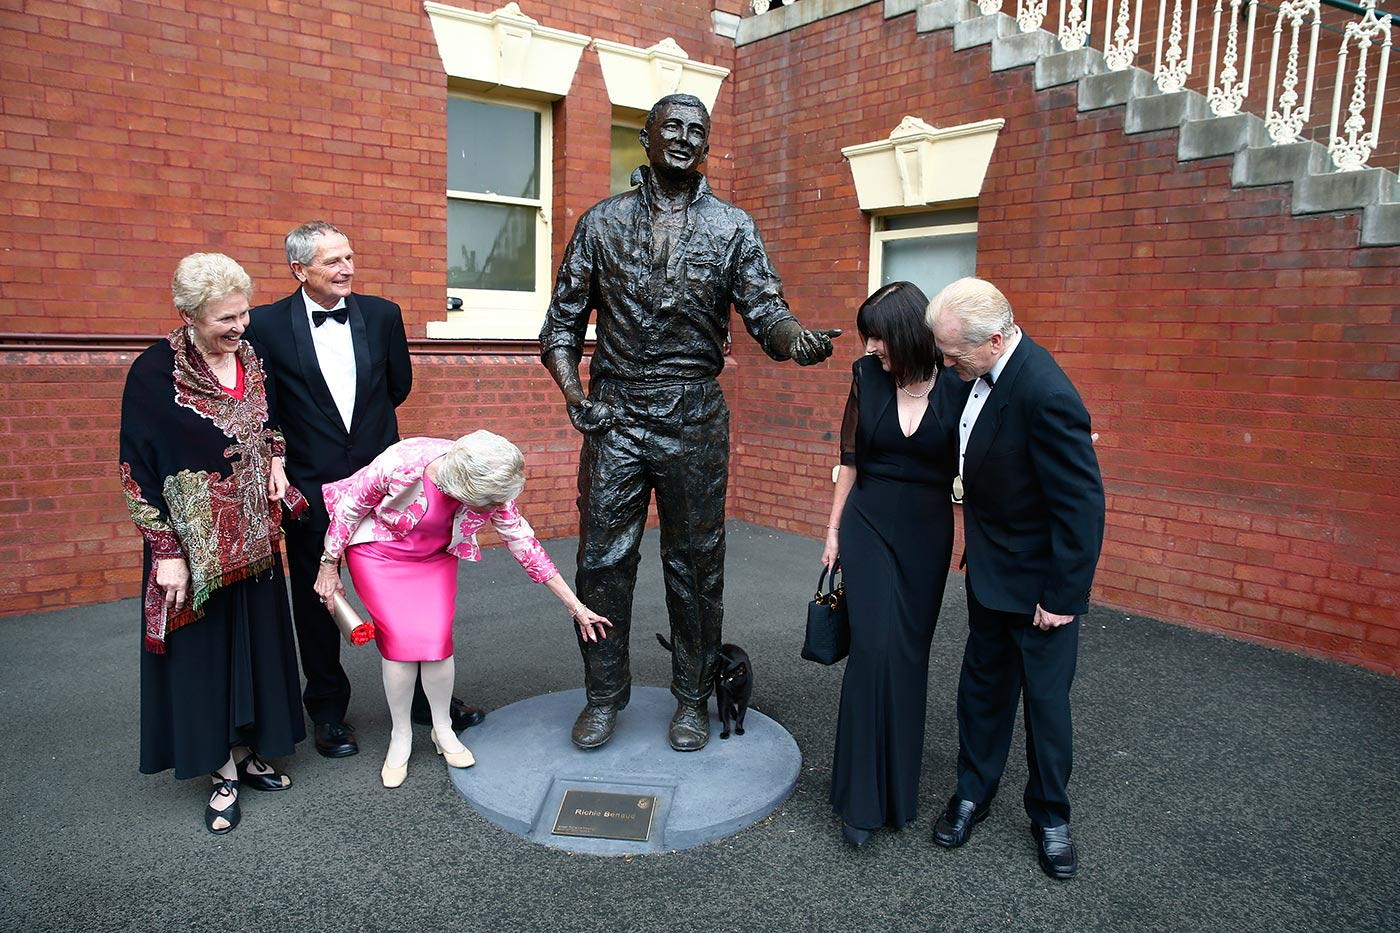 The Benauds at the Richie: John Benaud and his wife Lyndsay at left, Richie Benaud's wife Daphne (bending), and his son Jeffrey and his wife